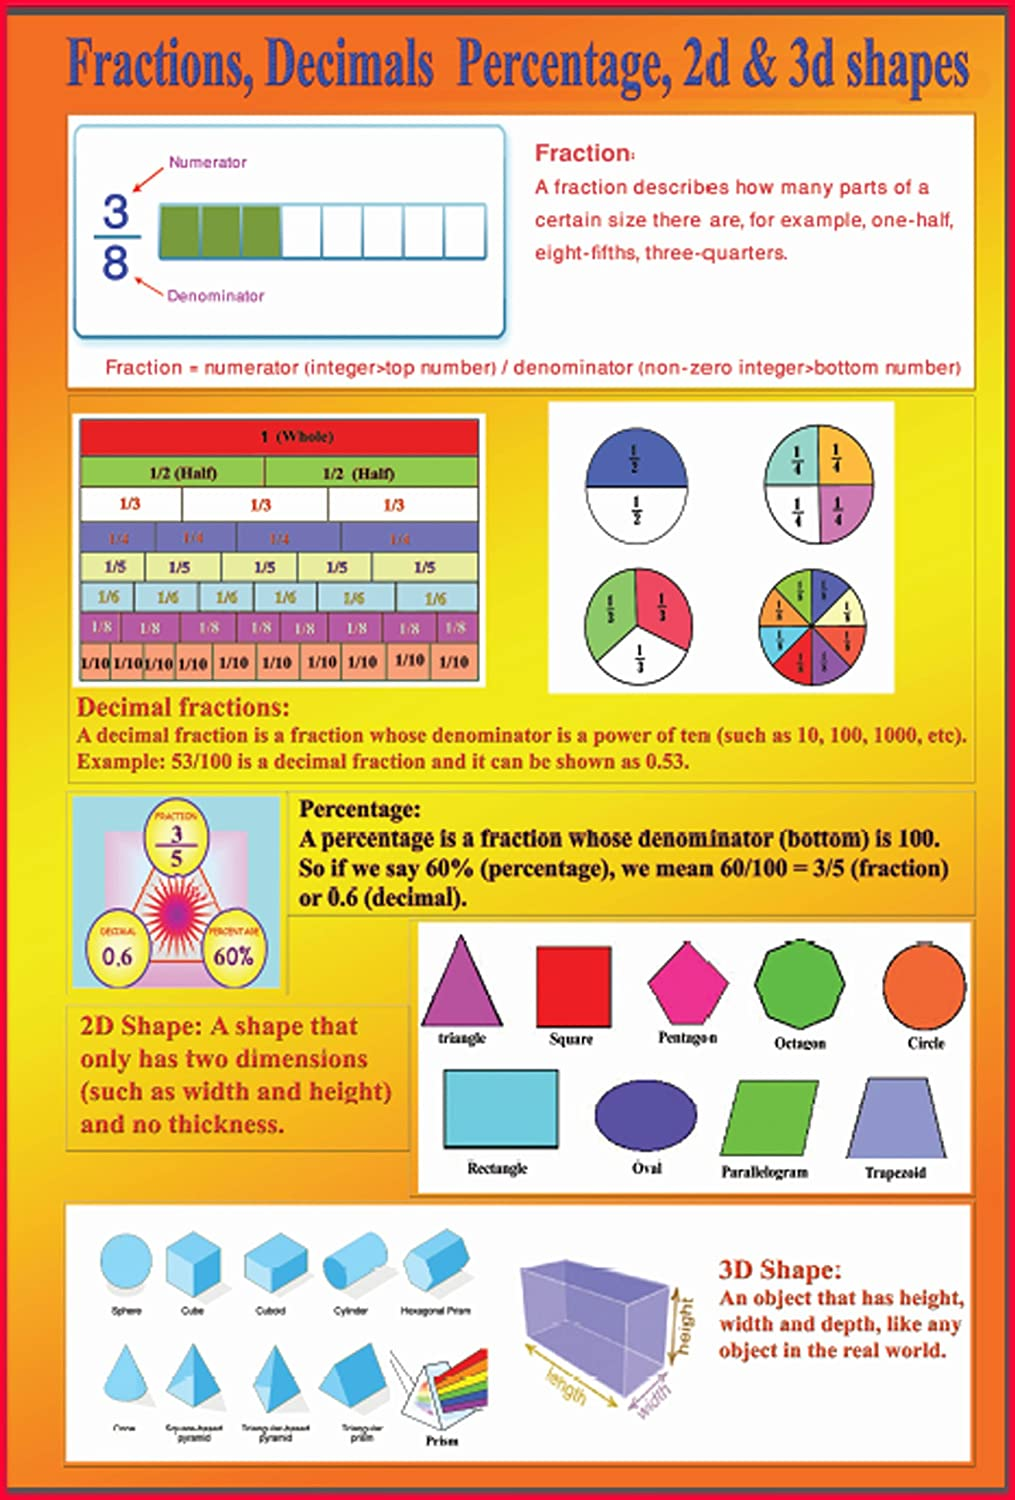 Laminated Fractions Decimals Percentages 2d & 3d Shapes Educational Poster   Wall Chart Maths Primary Teaching